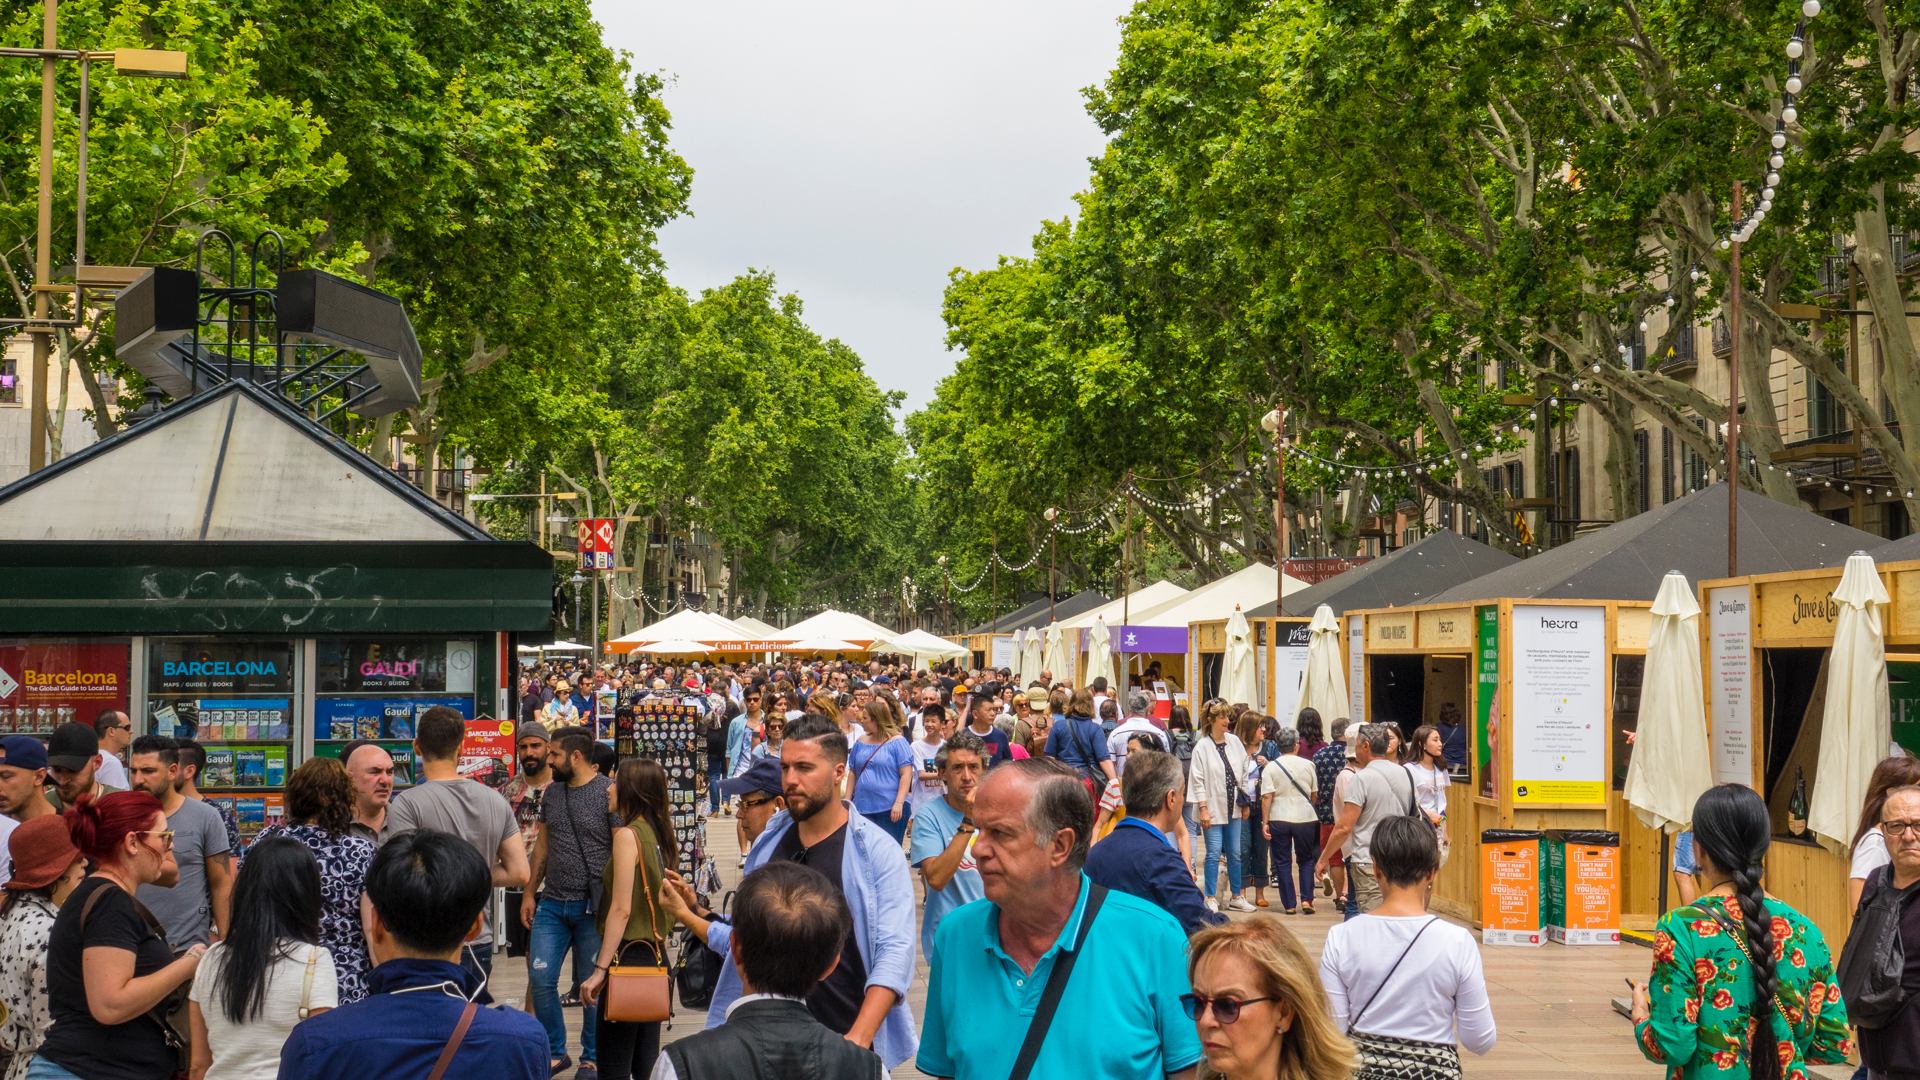 At the south end (beginning?) of La Rambla, there was a big open-air street food market set-up. It was packed, but seemed the perfect place to stop for a late lunch.